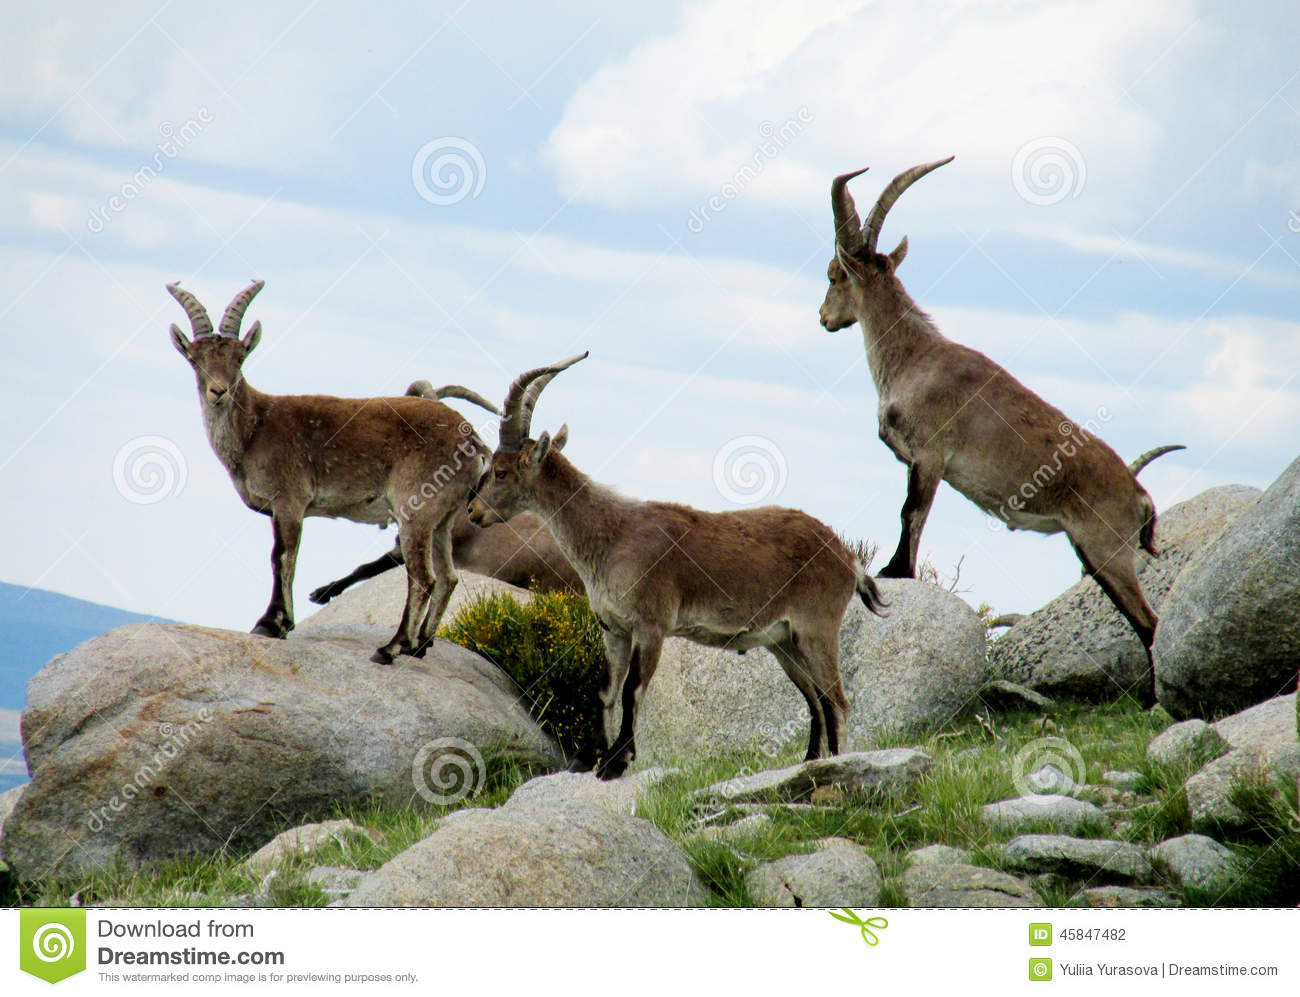 Alpine goats with horns - photo#26